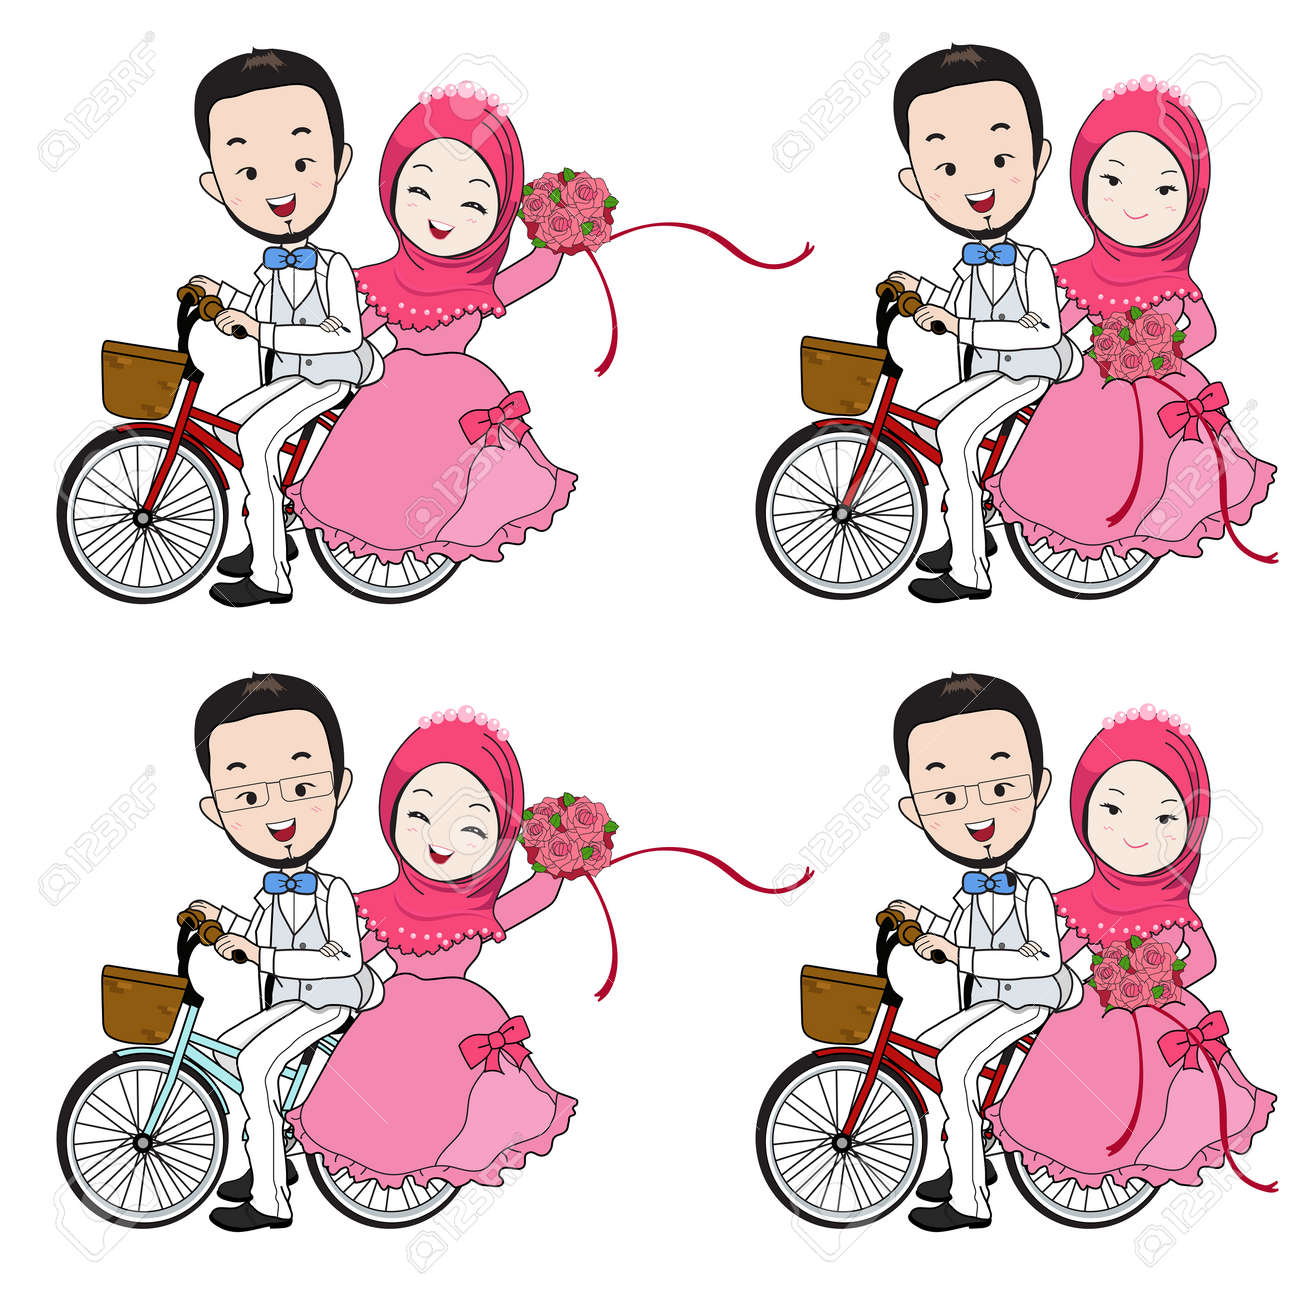 785cbd7cab Muslim Wedding Cartoon